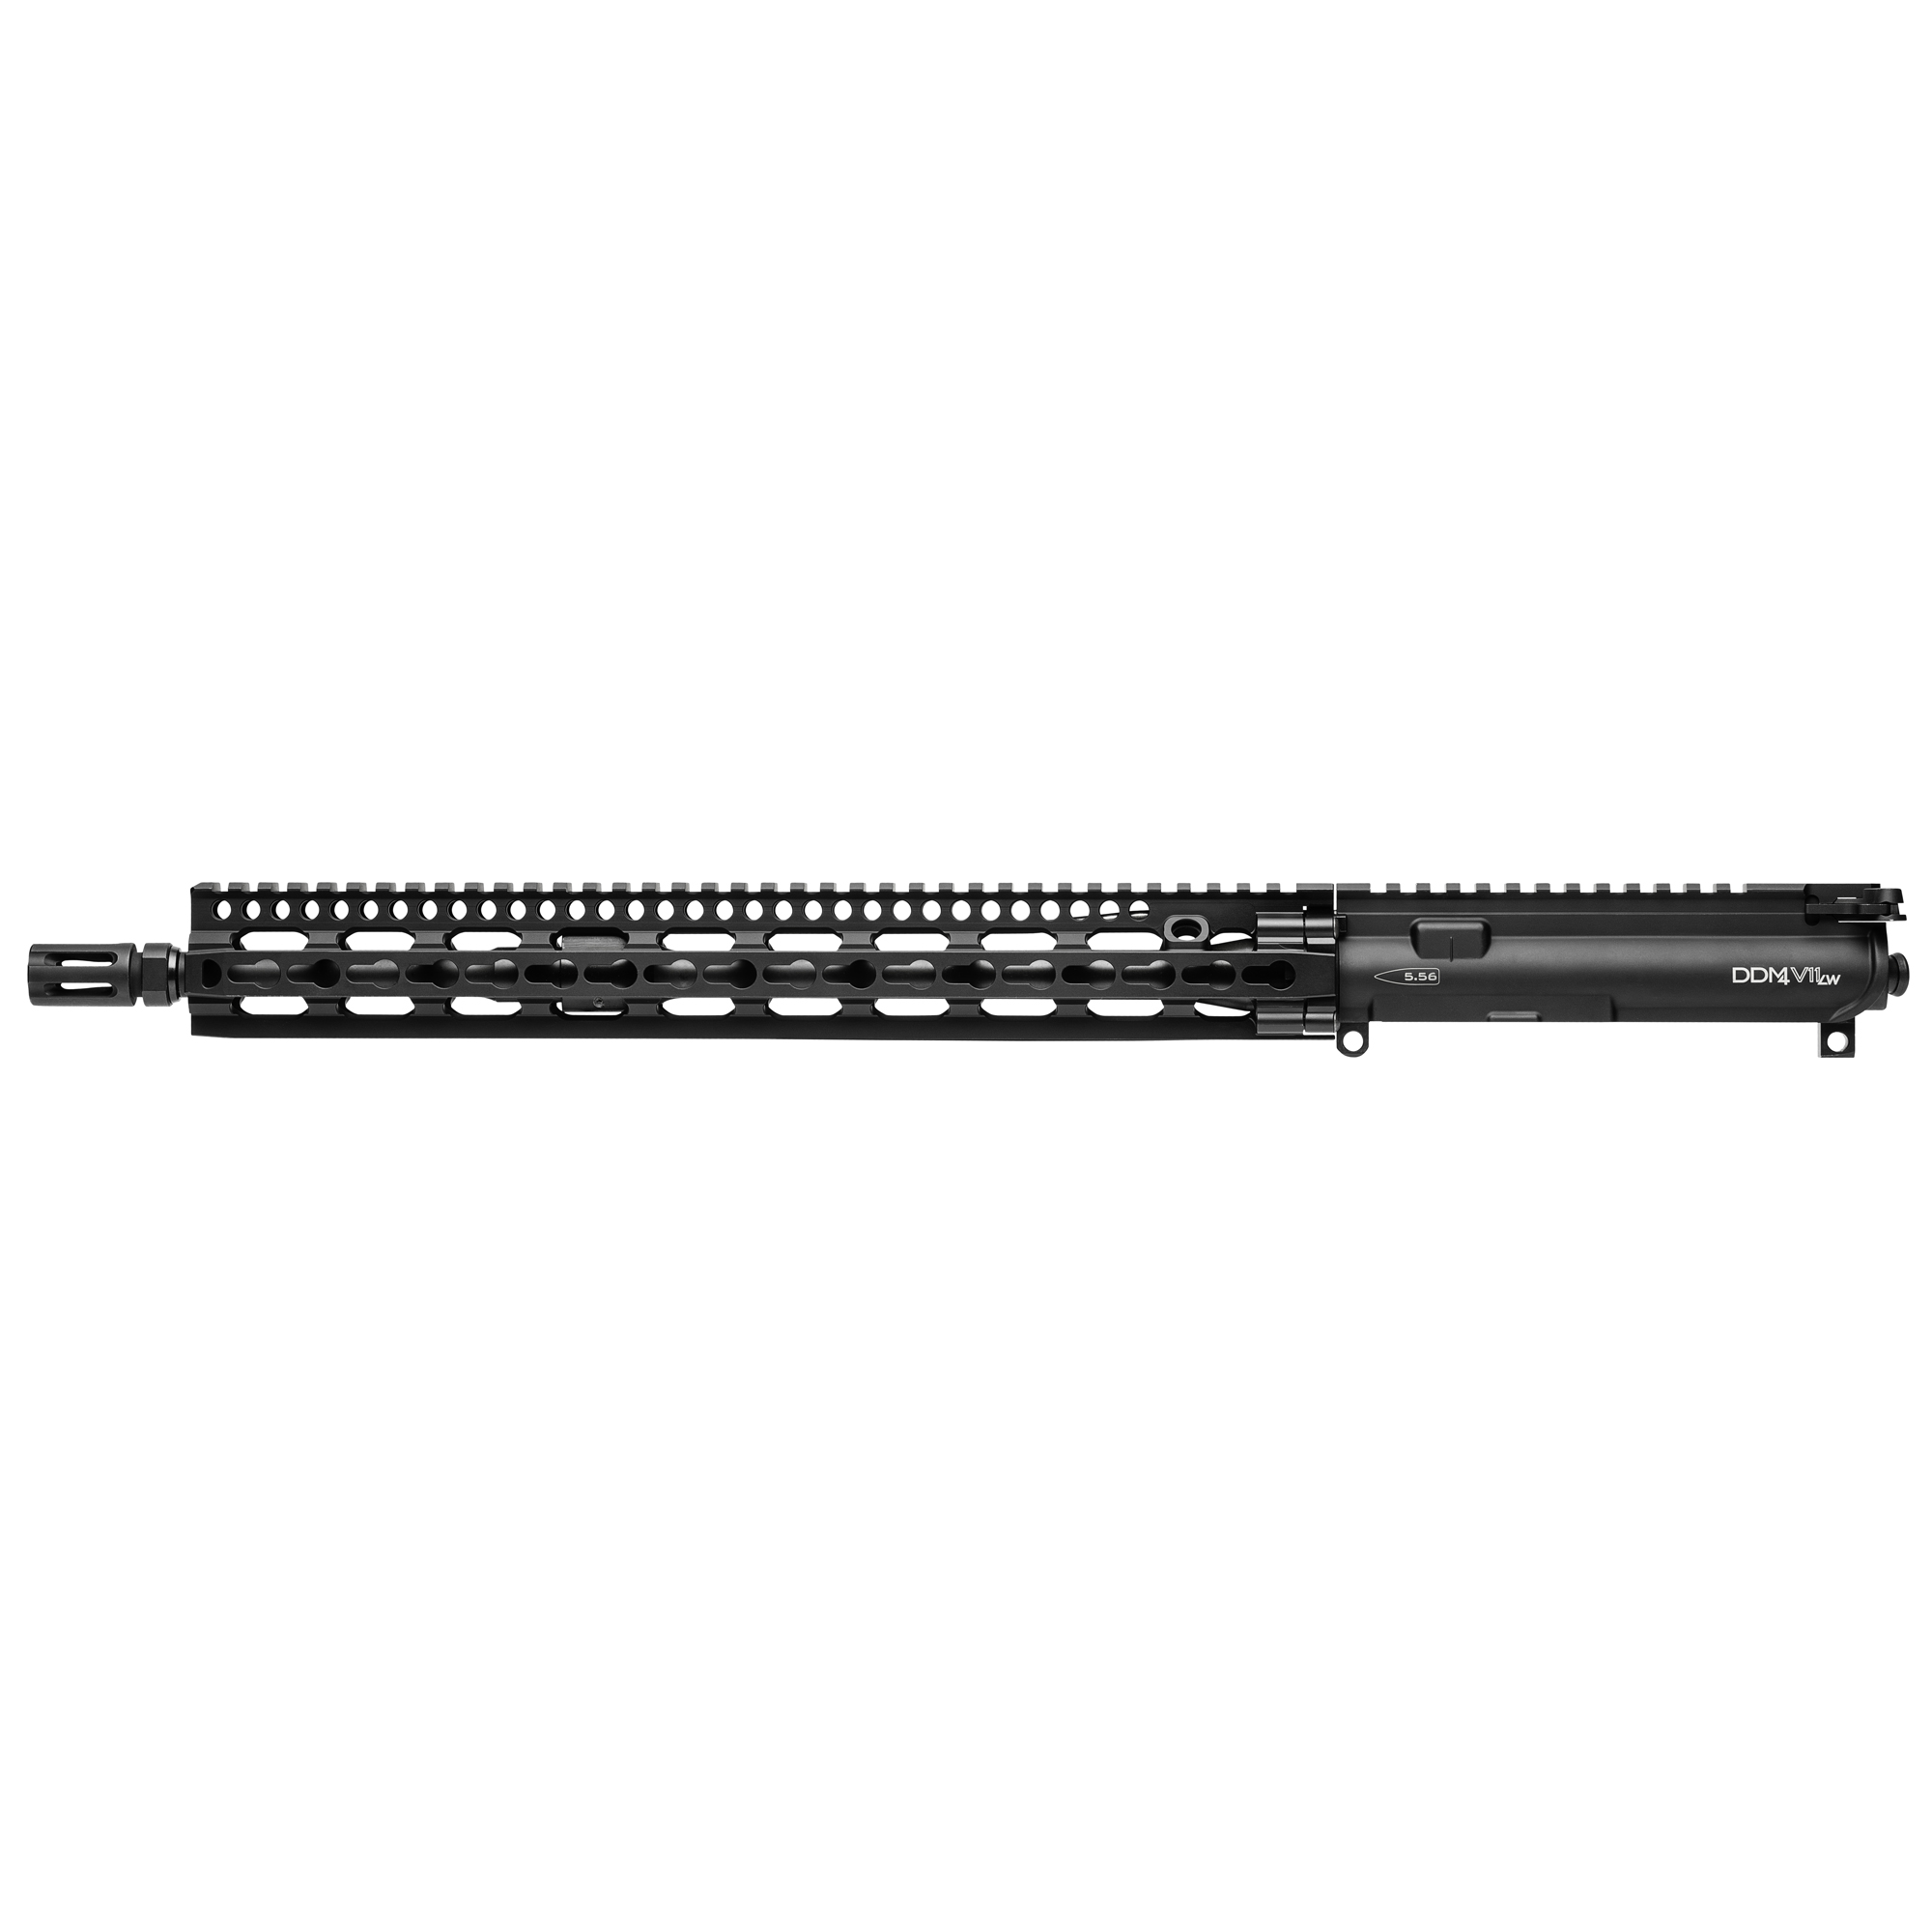 "The Daniel Defense M4 Carbine V11 Lightweight Upper Receiver Group was designed for shooters who prefer the benefits of the KeyMod system integrated in the new SLiM Rail. KeyMod is a recoil resistant"" two-part"" direct attachment method for accessories that offers outstanding ""return-to-zero"" when accessories are removed and reinstalled. The new SLiM Rail 15.0 offers incredible weight savings as well as superior cooling"" ergonomics"" and modularity while maintaining the strength and durability expected from Daniel Defense. The long"" 15"" rail gives operators the option to have the support hand extended out close to the muzzle allowing them to drive the gun more precisely and prevents over travel when transitioning between multiple targets. This combined with a mid-length gas system"" which is known to have a smoother recoil impulse"" allows for quick"" but precise rapid fire. An uninterrupted picatinny rail on top and KeyMod attachment at 3"" 6"" and 9 o'clock"" ensures plenty of real estate for optics and accessories and allows for maximum sight radius for accurate shooting with rail mounted iron sights. The DDM4v11 LW URG is equipped with a free-floating"" Cold Hammer Forged"" 16"" Lightweight profile barrel"" making it almost 5 ounces lighter than the standard V11. Daniel Defense upper receiver groups come complete with bolt carrier group and charging handle."